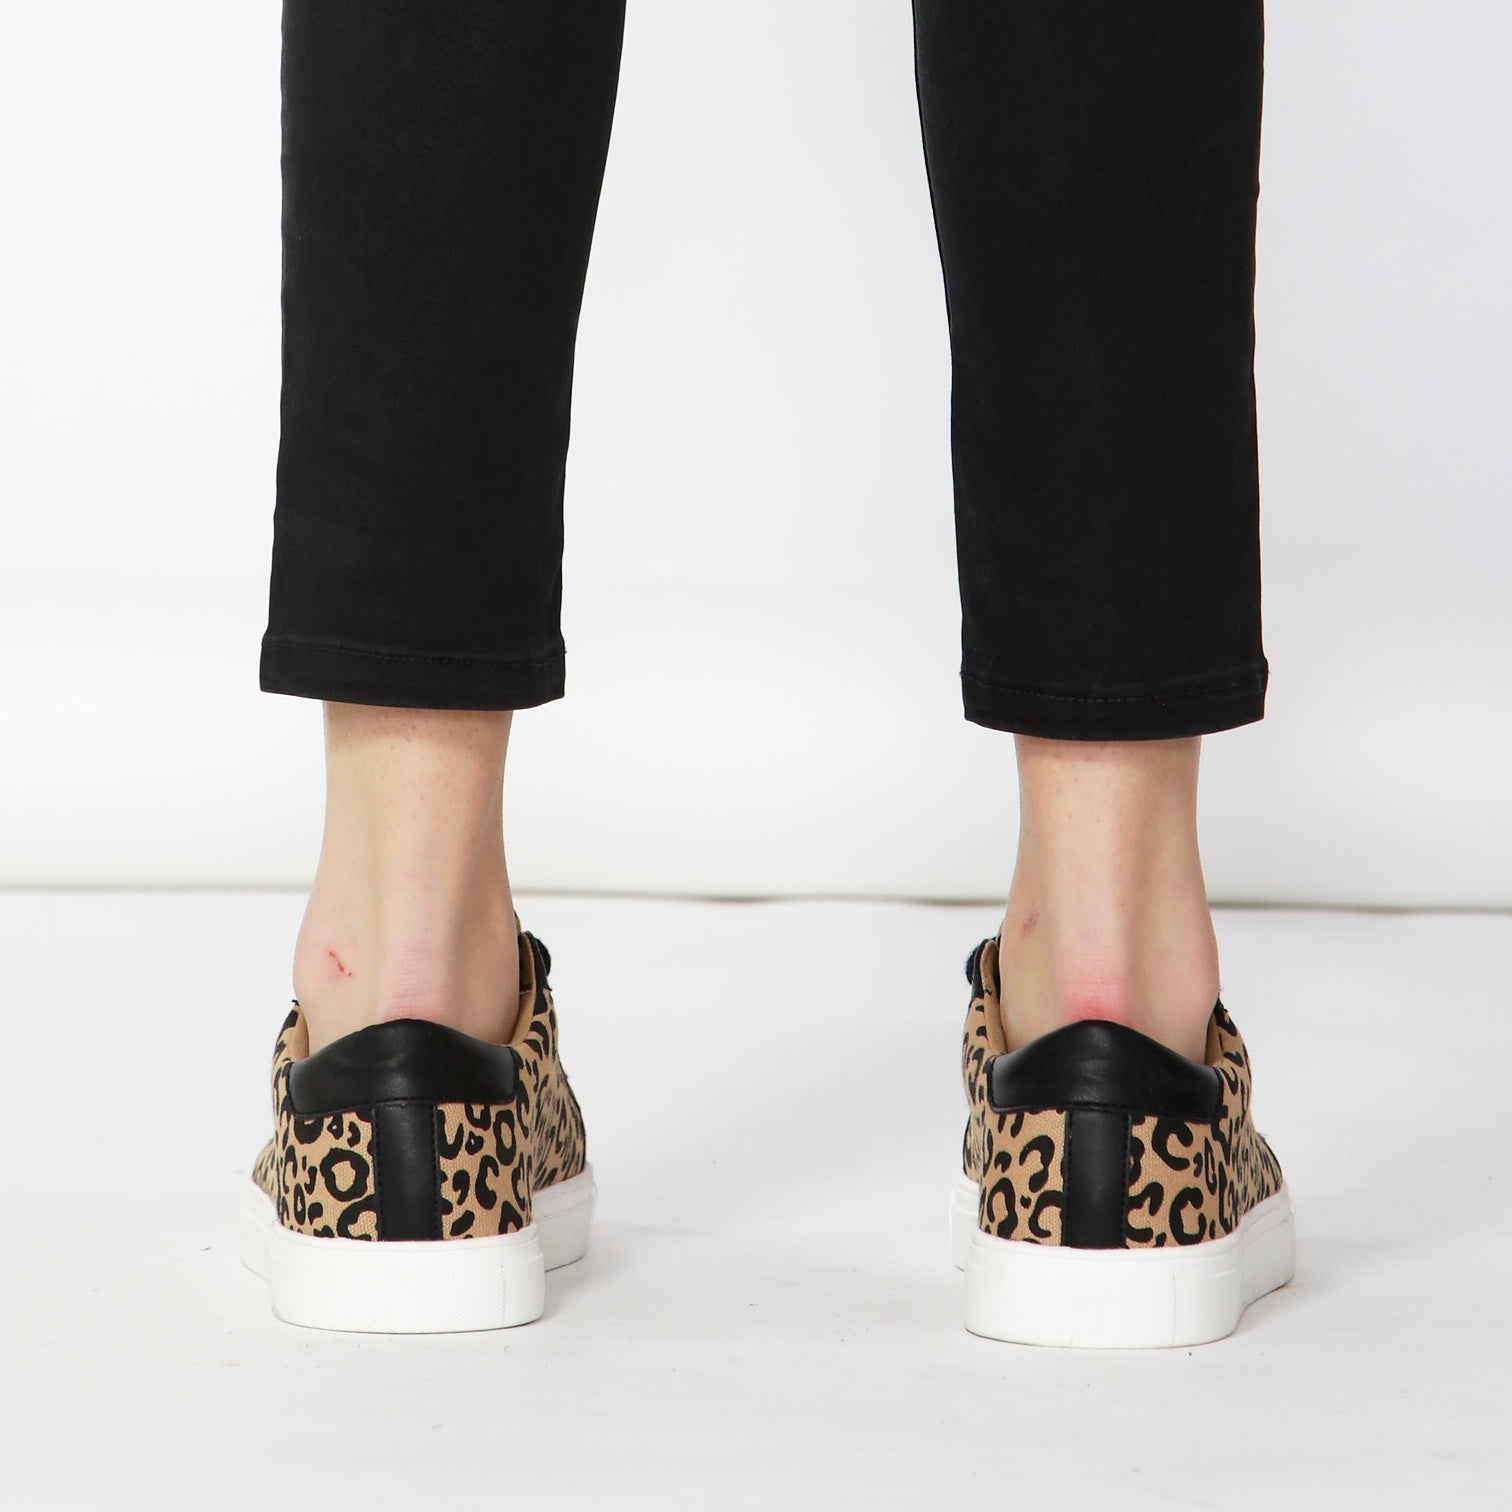 Betty Basics Exploration Sneaker in Beige Leopard LAST PAIR Size 6